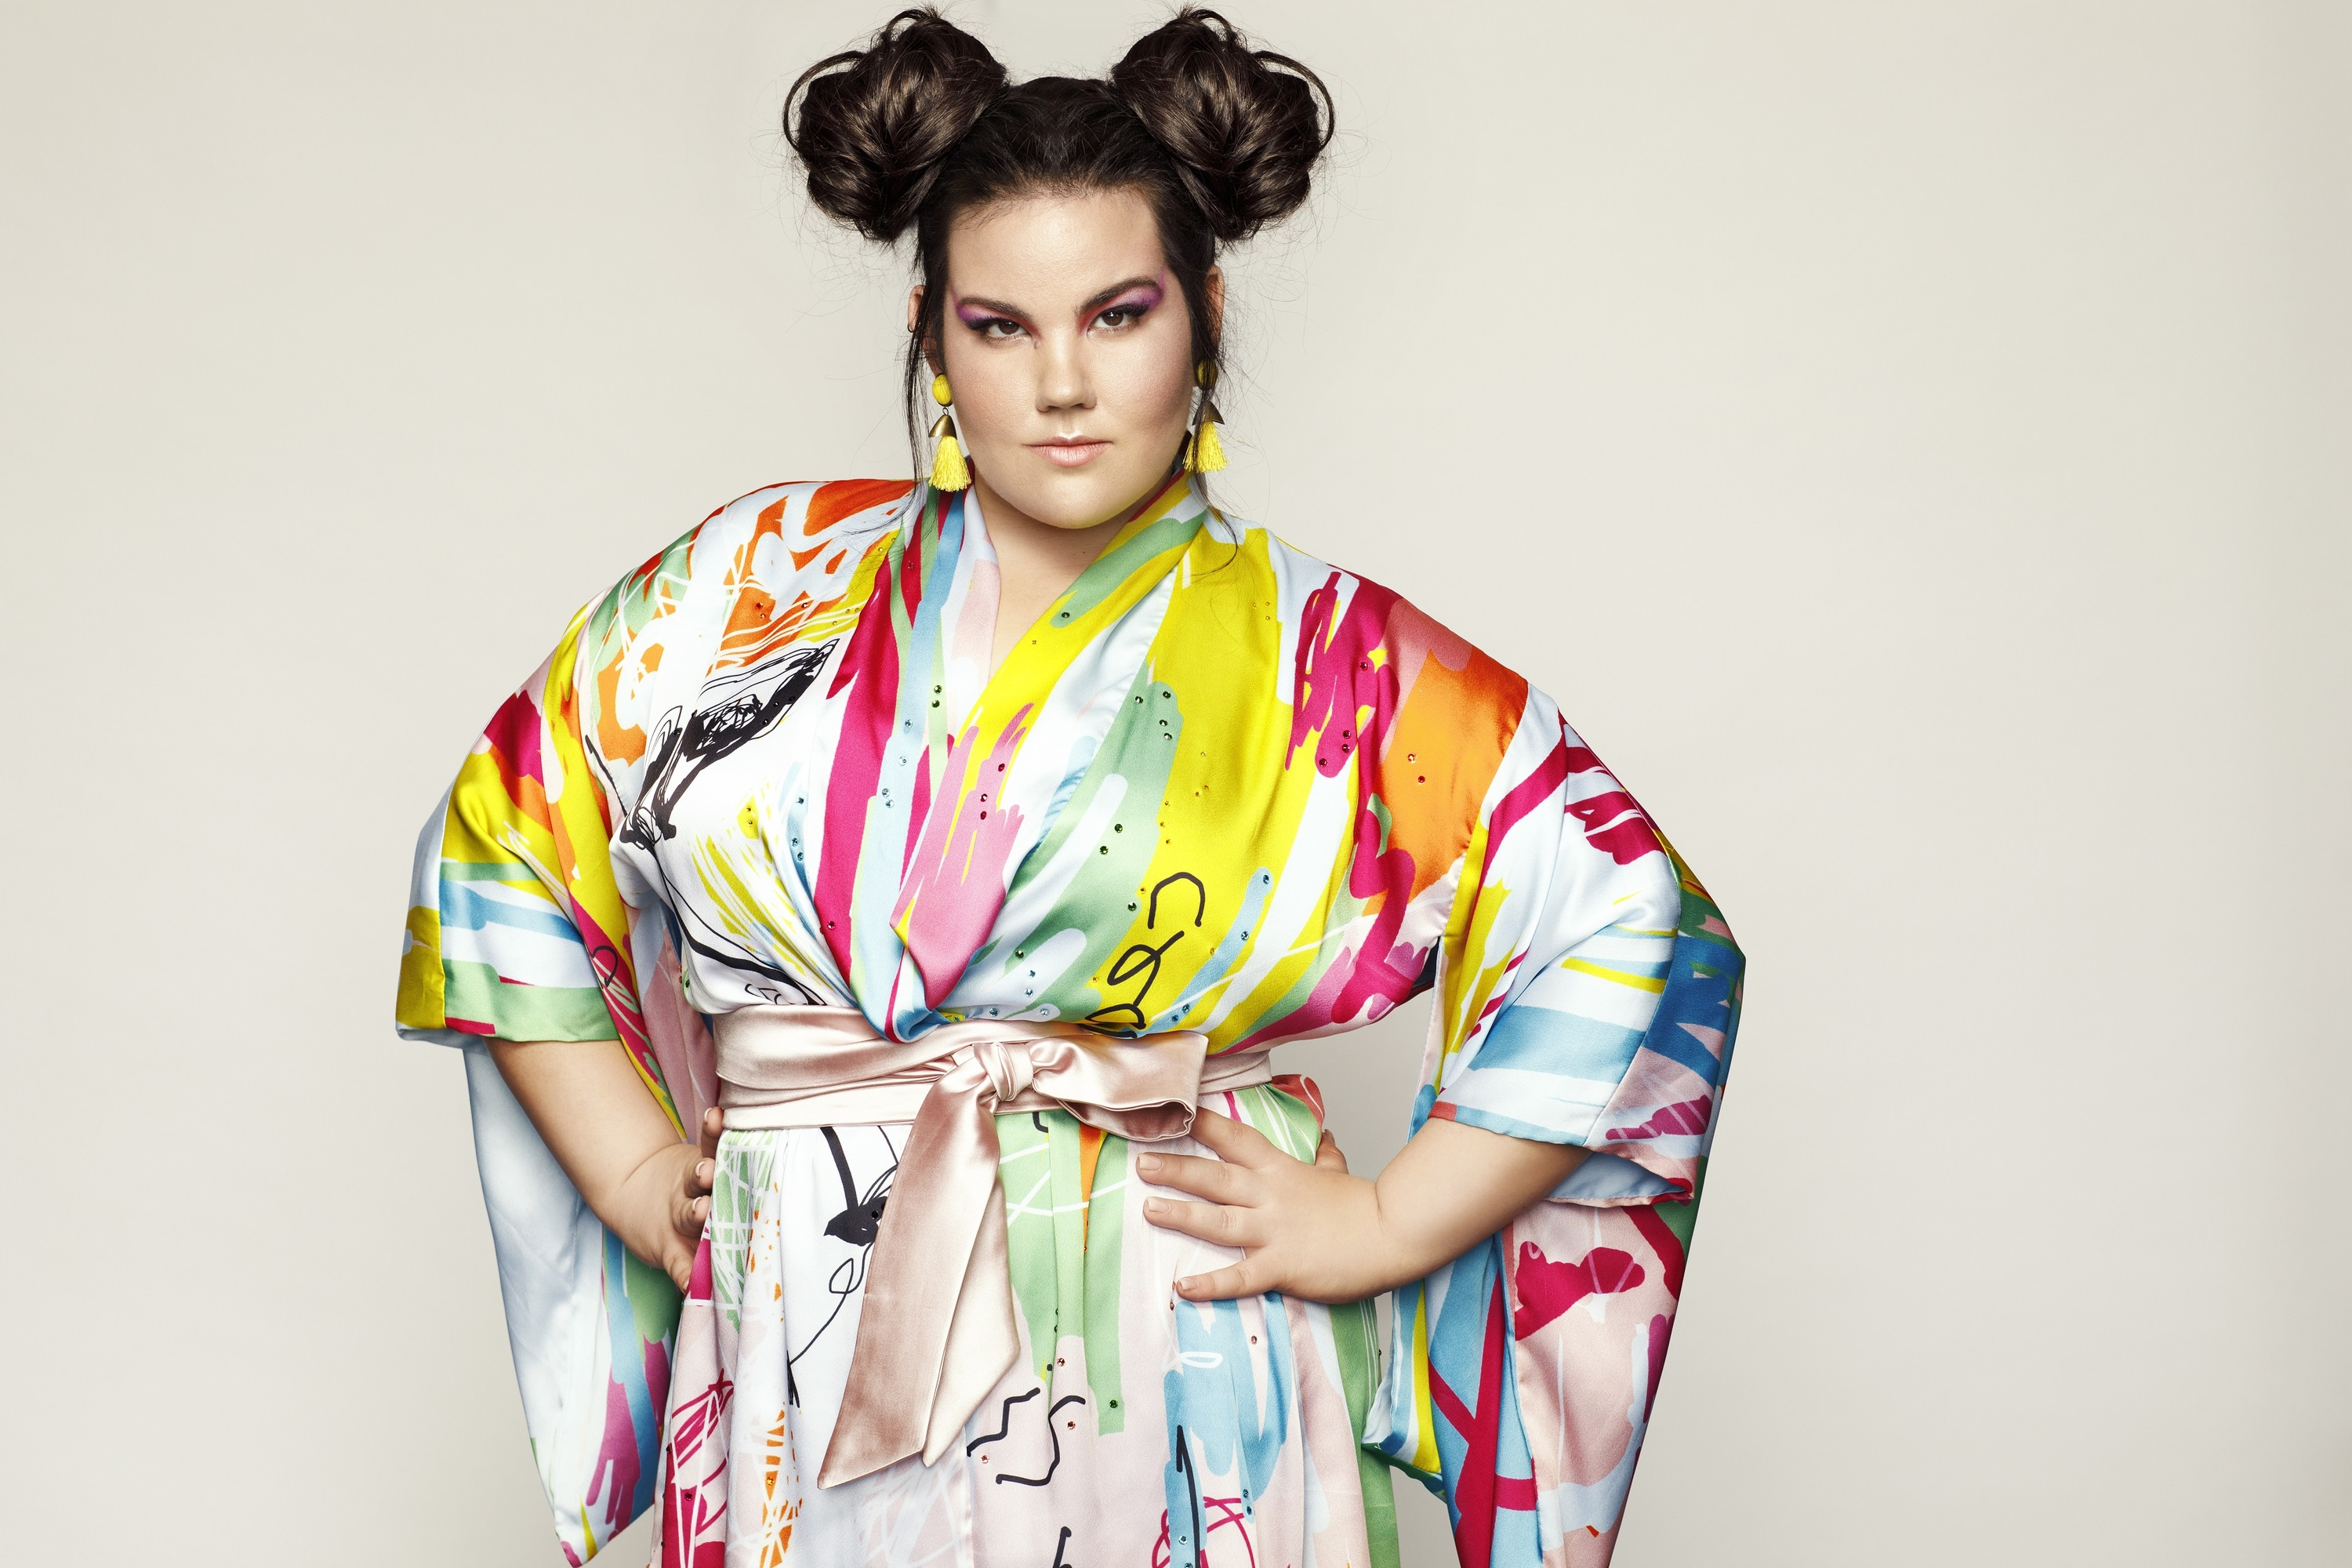 An interview with Eurovision's Israeli songstress, Netta Barzilai